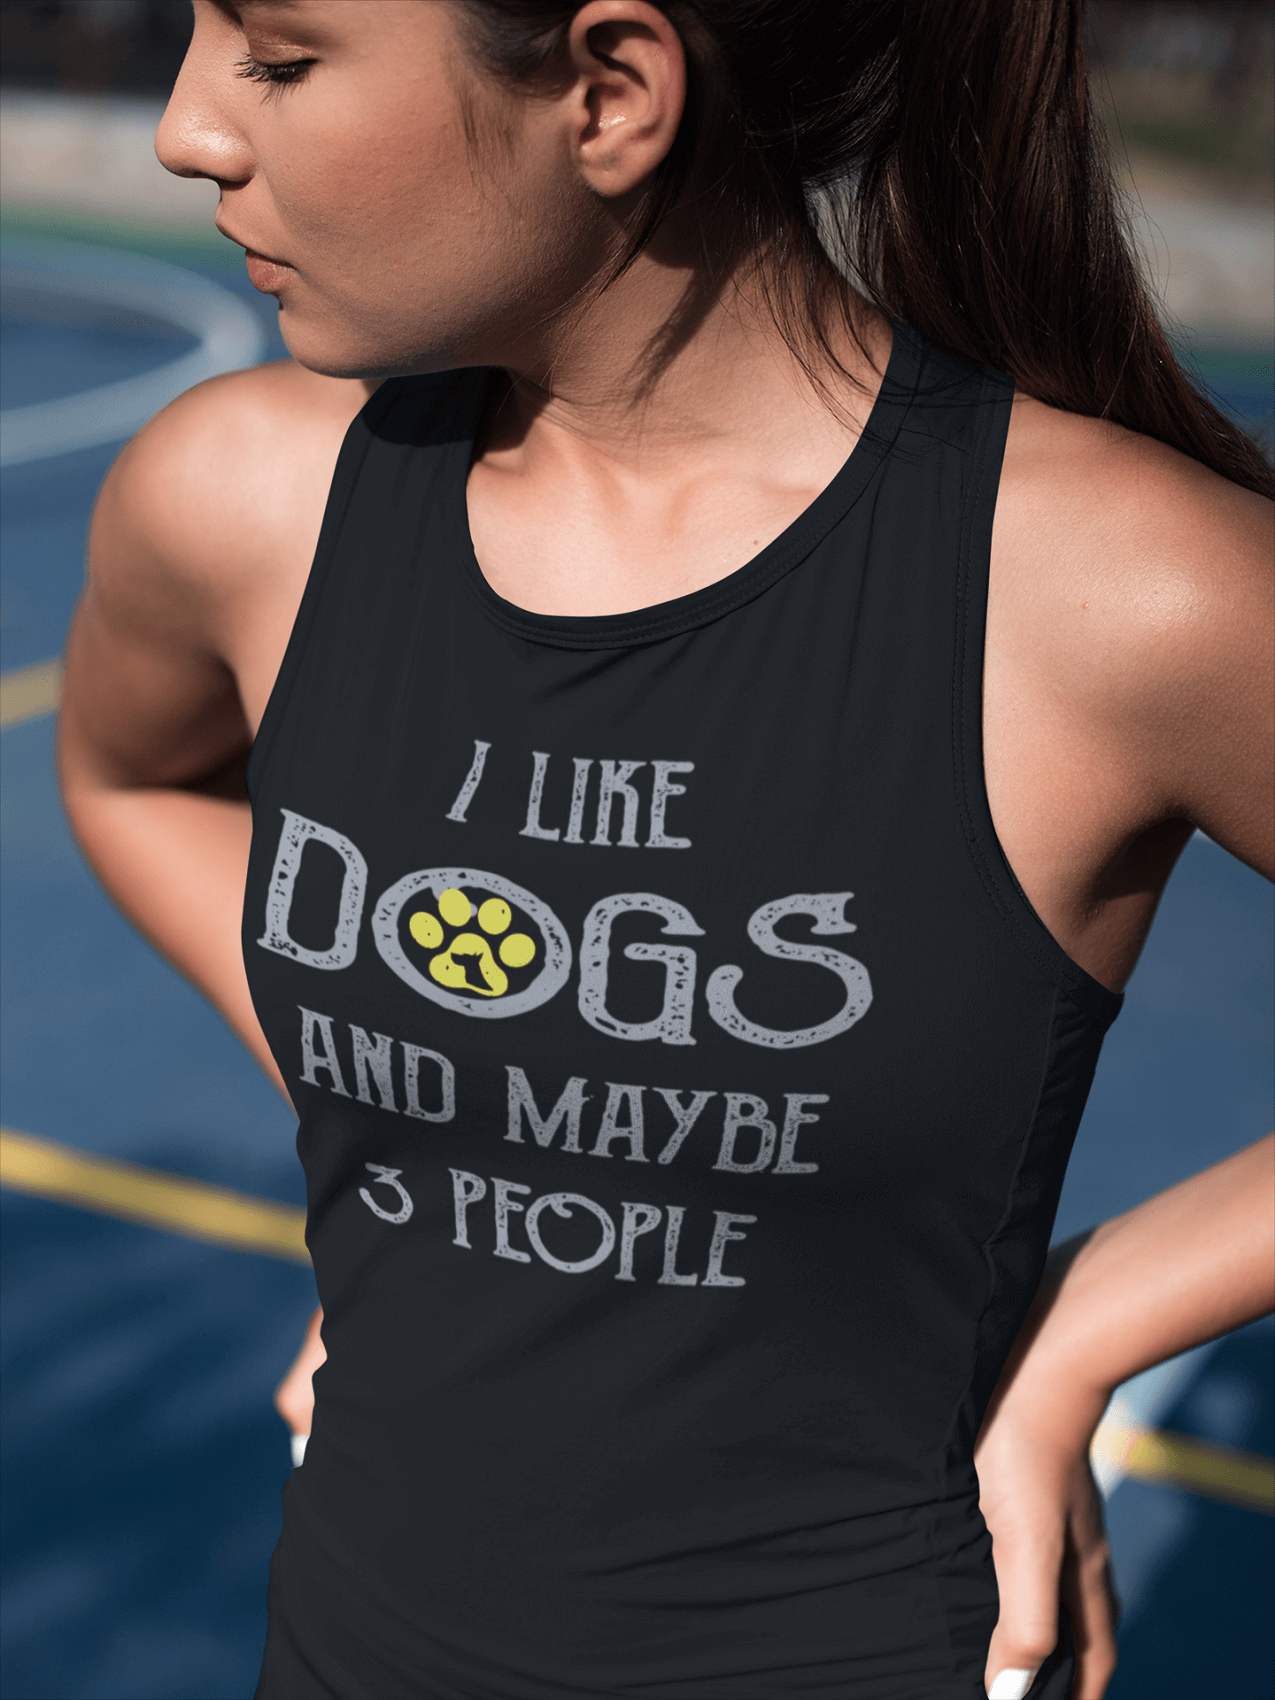 """I Like Dogs And Maybe 3 People""  Women's Racerback Tank Top"